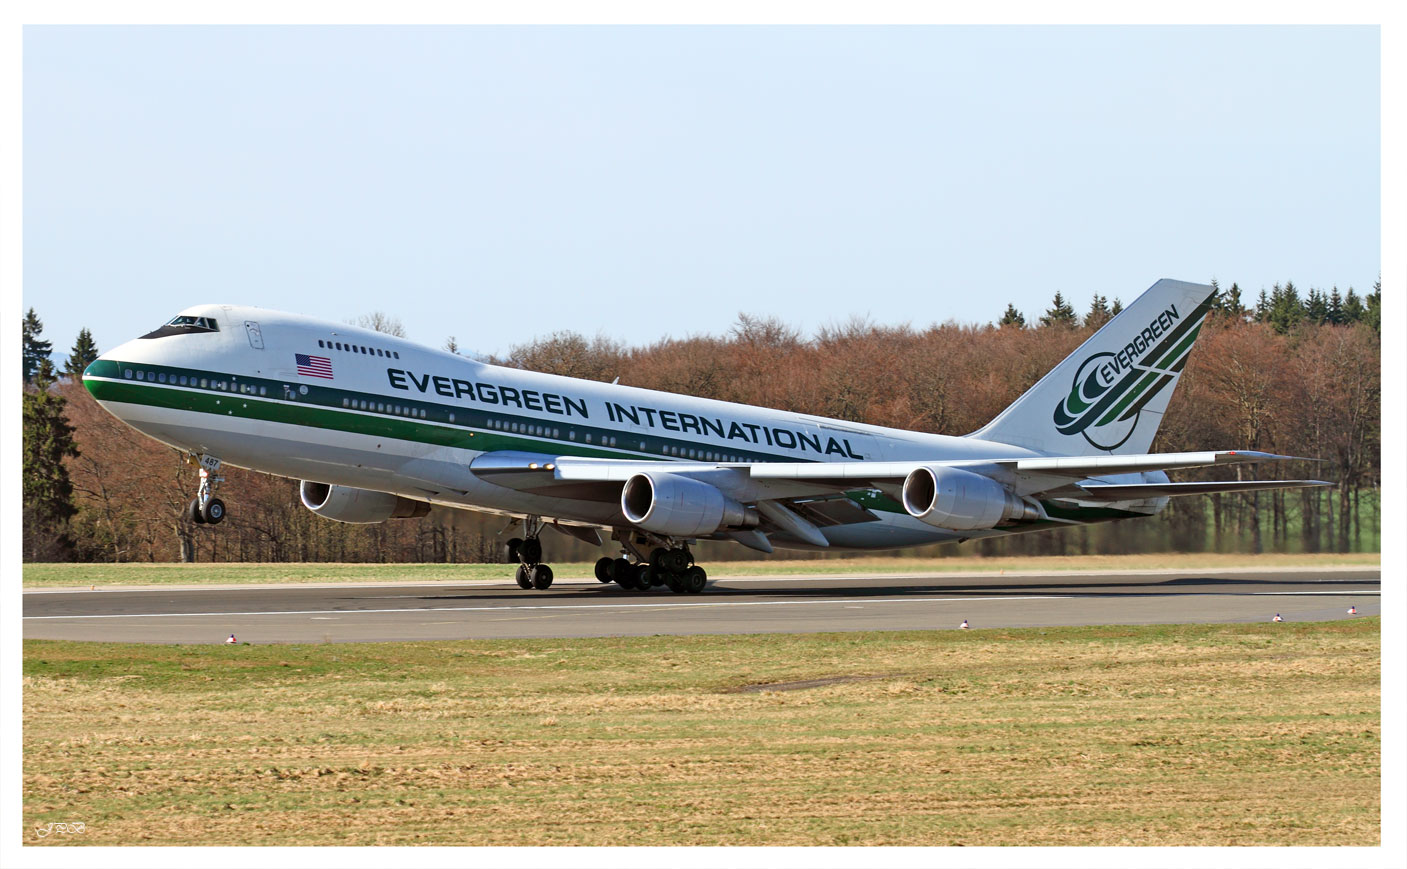 Evergreen International Airlines Boeing 747-200SF Take off